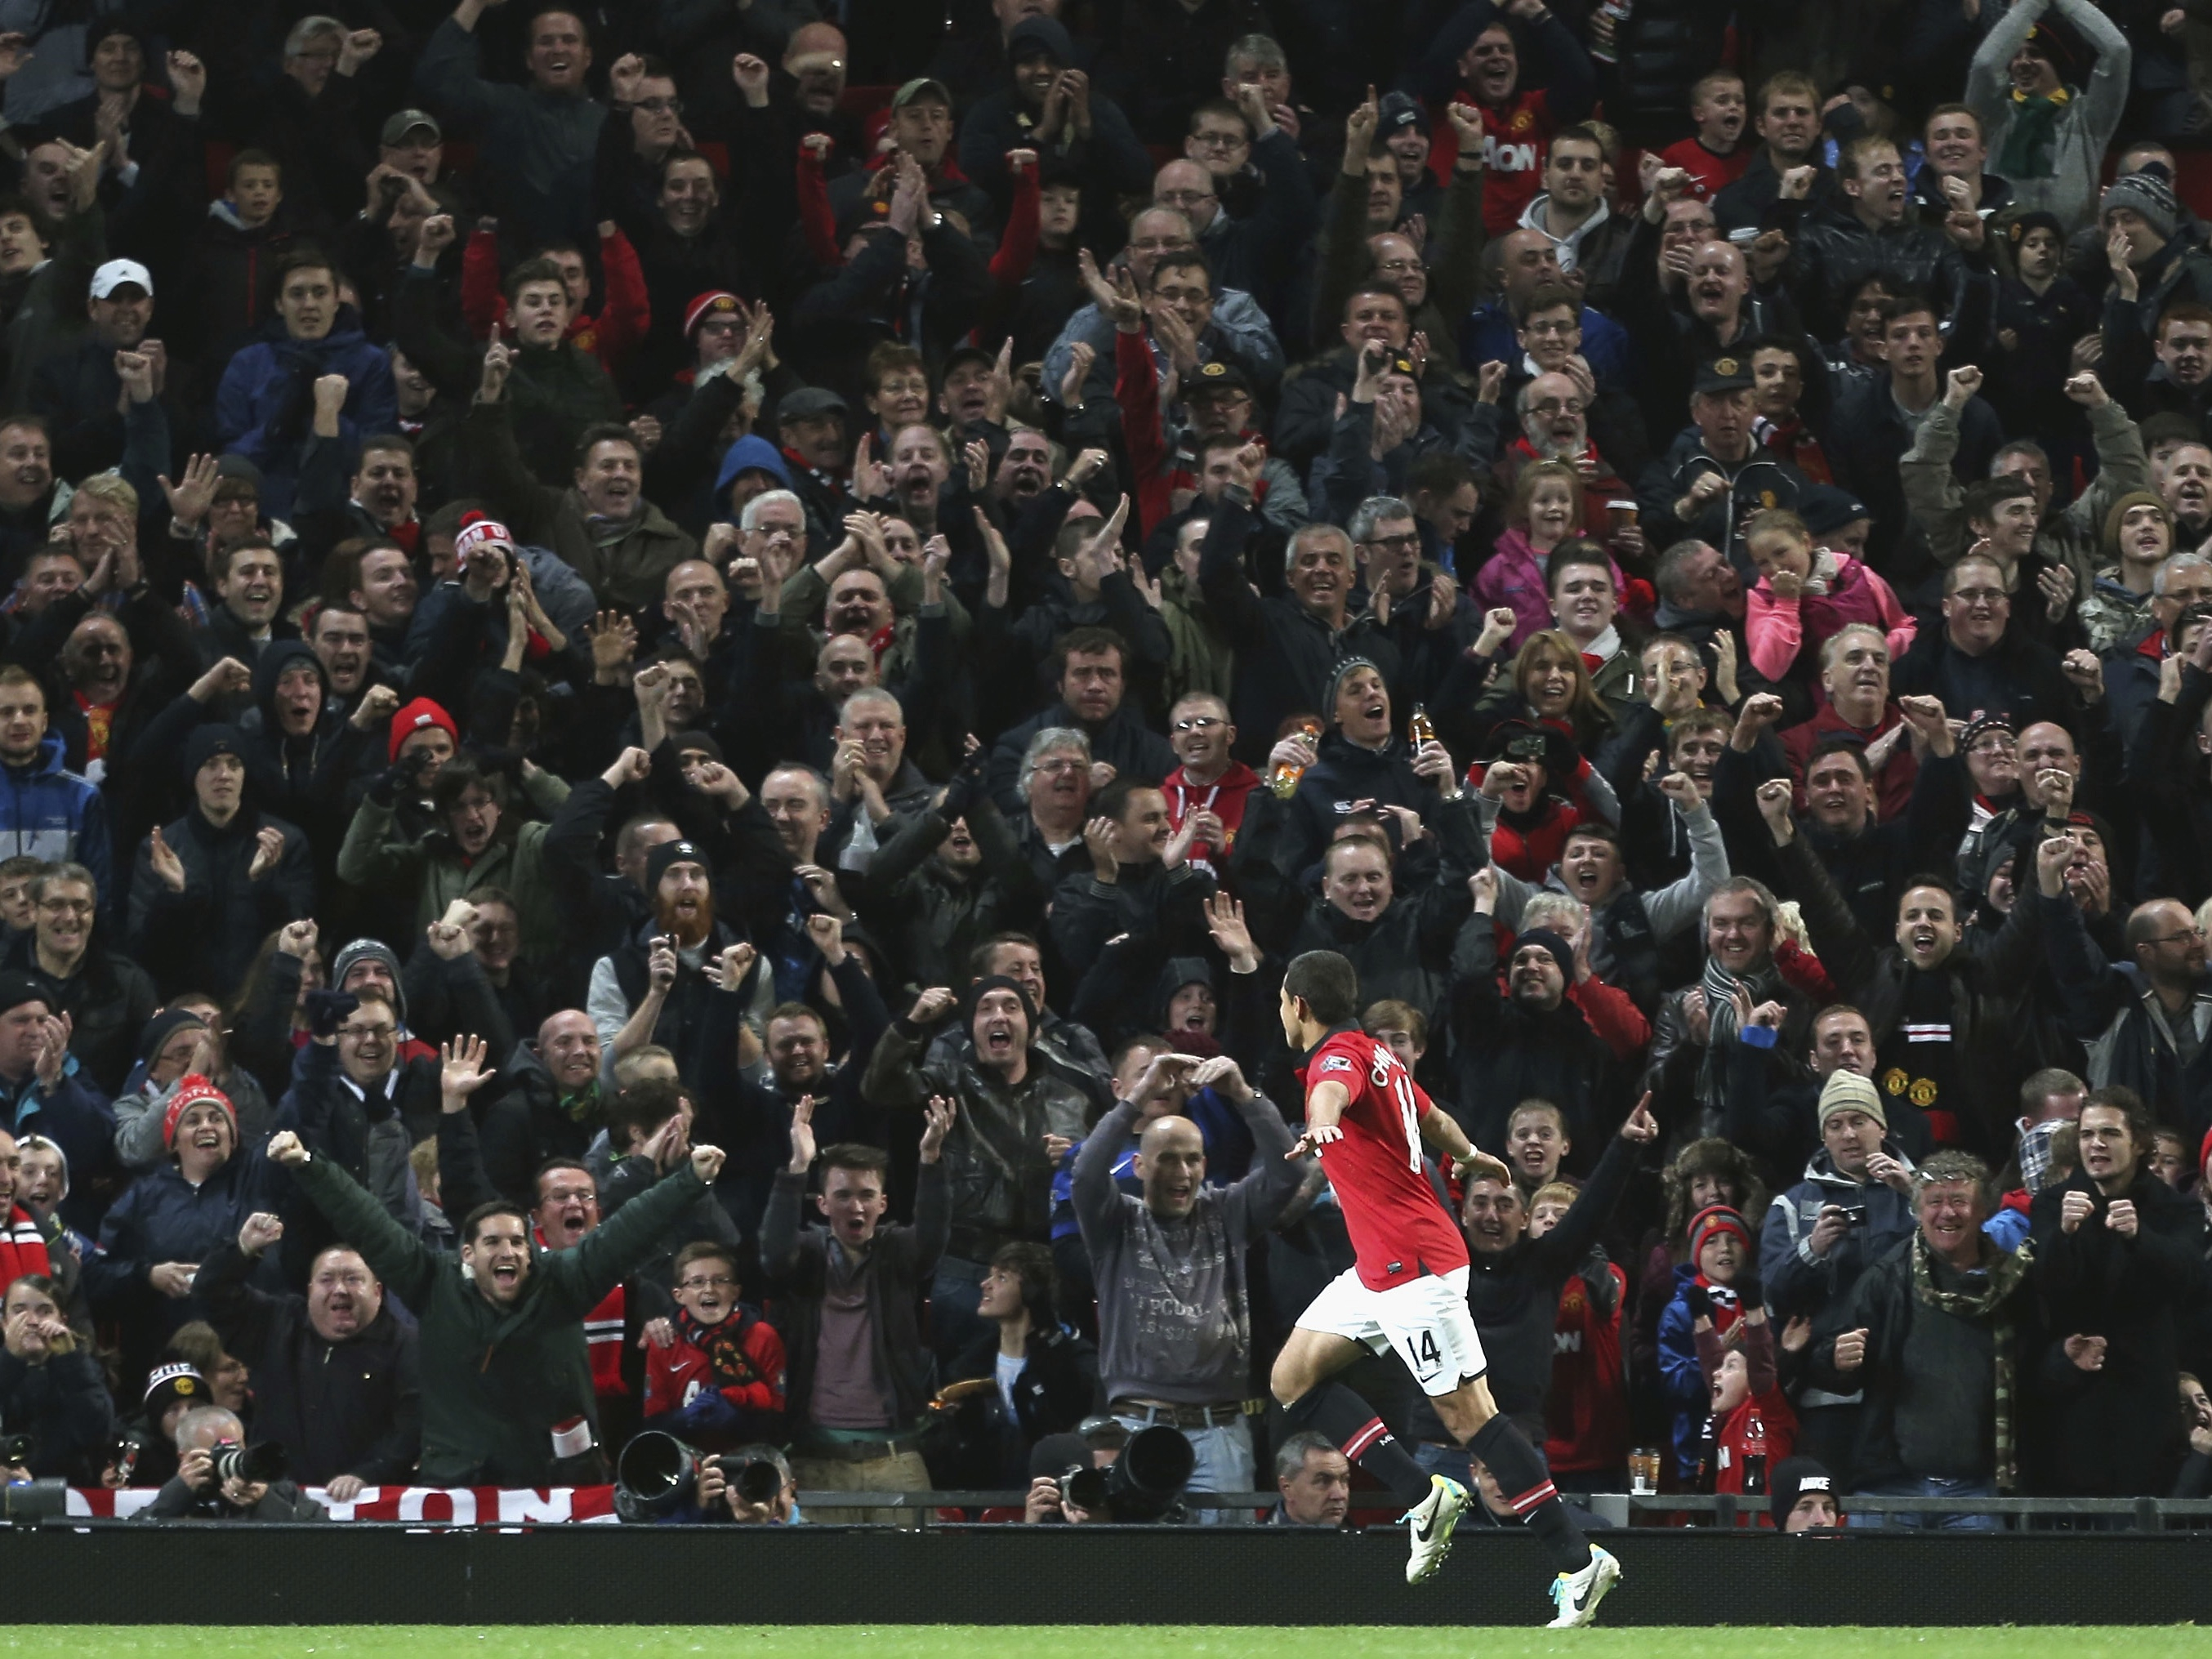 Manchester United v Norwich City – Capital One Cup Fourth Round